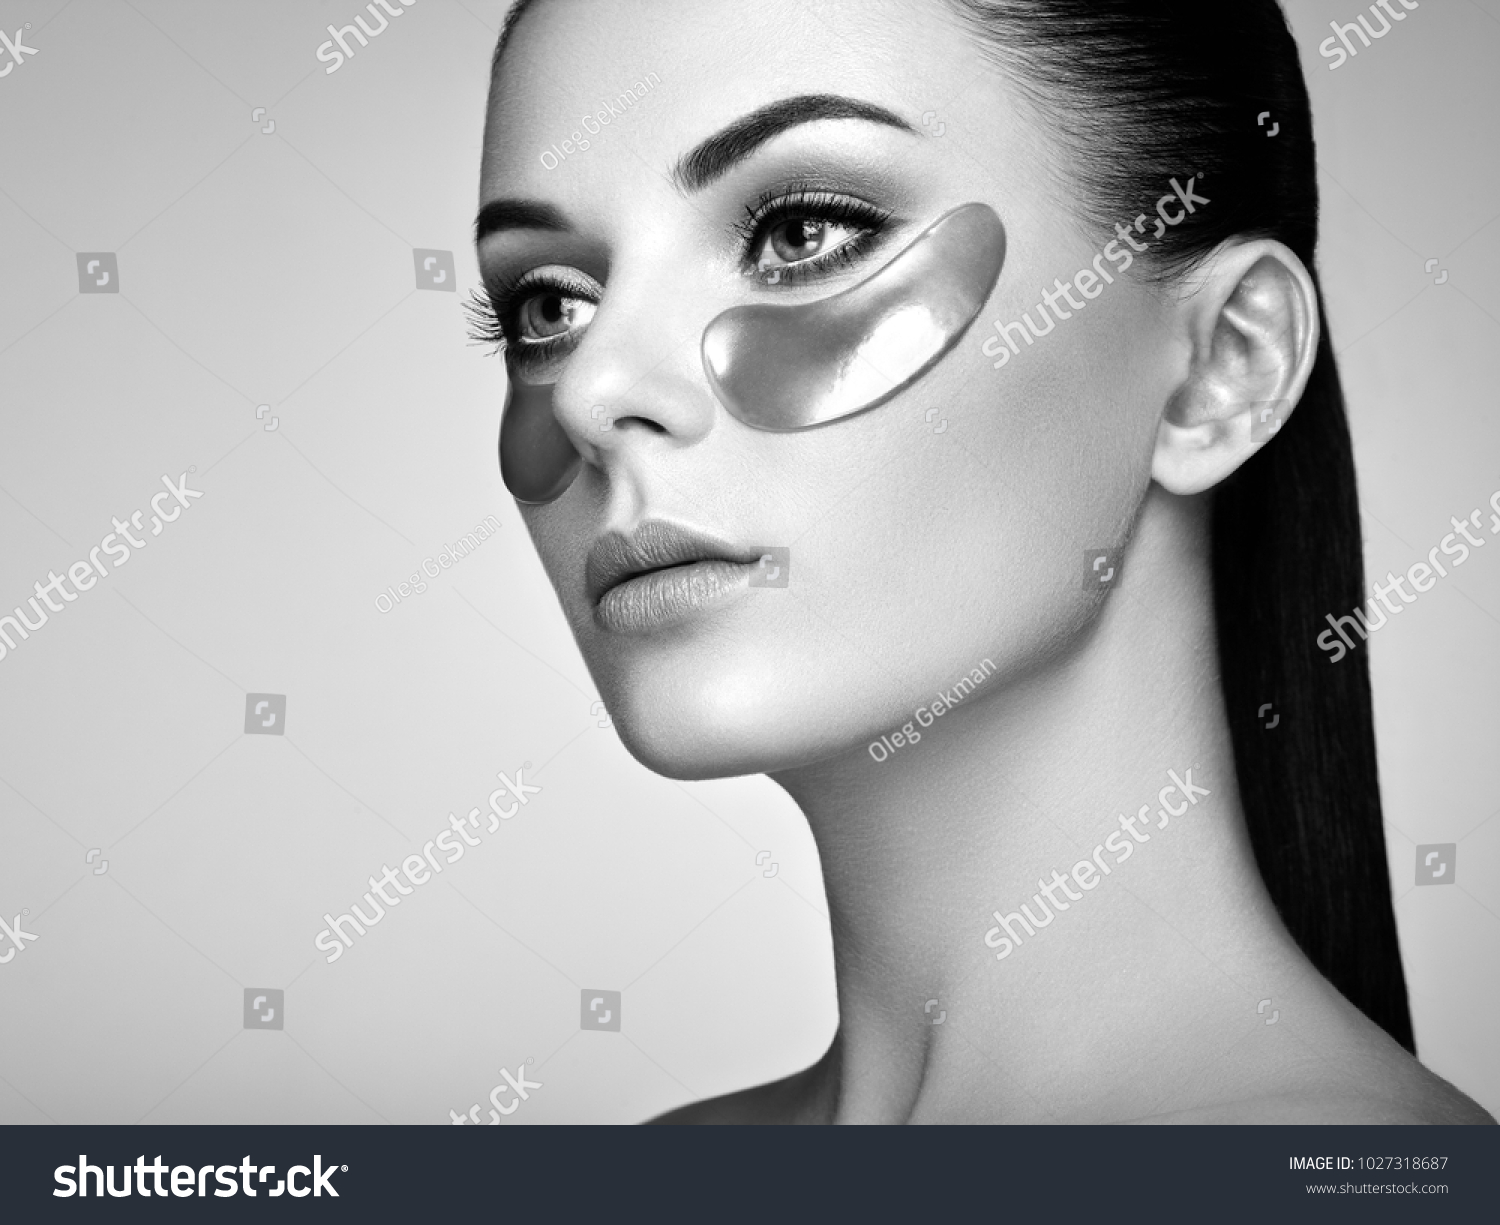 Portrait Of Beauty Woman With Eye Patches Woman Beauty Face With